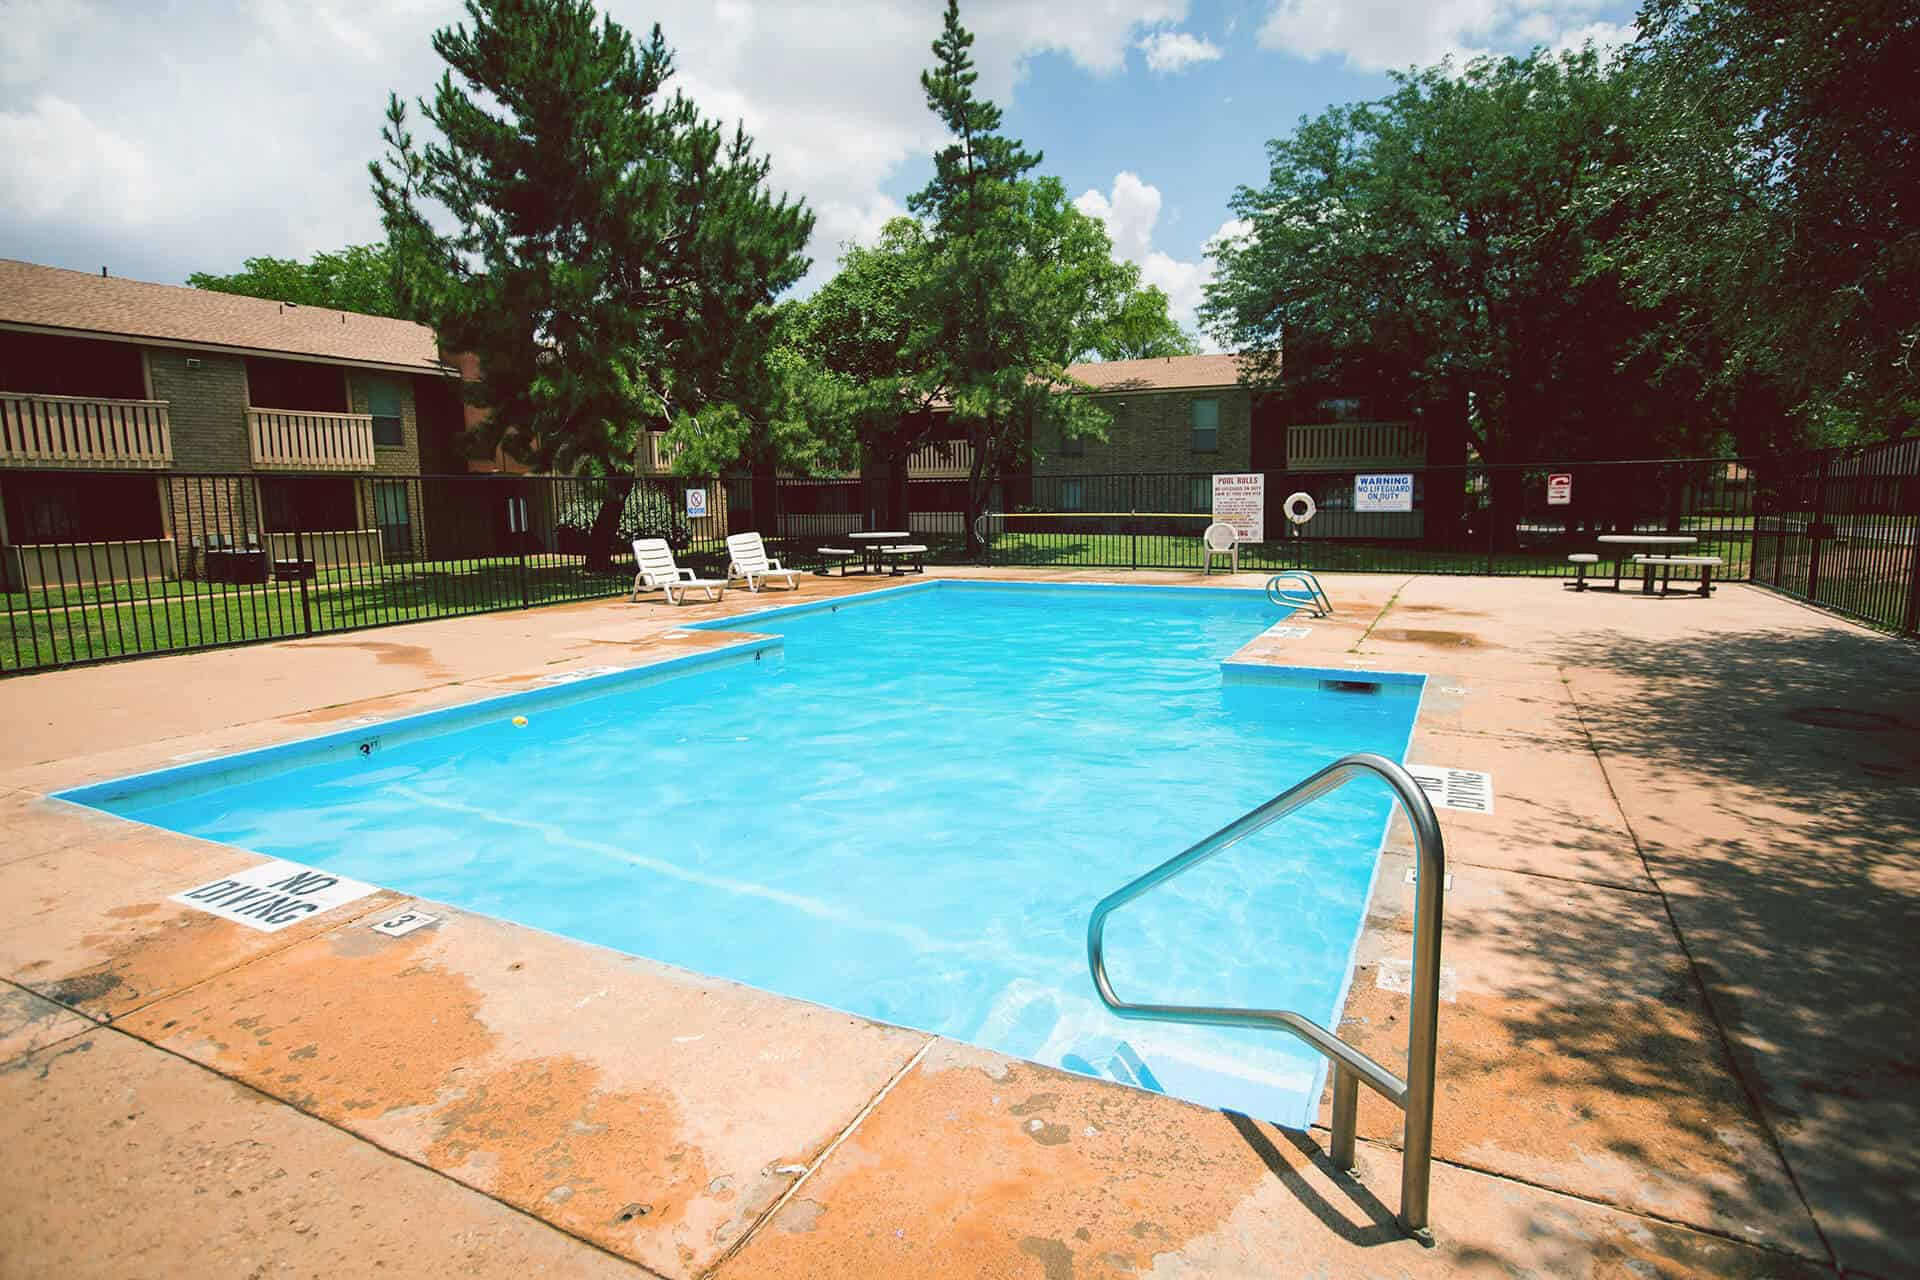 Lubbock pet friendly apartments for rent omni apartments - Public swimming pools in lubbock tx ...